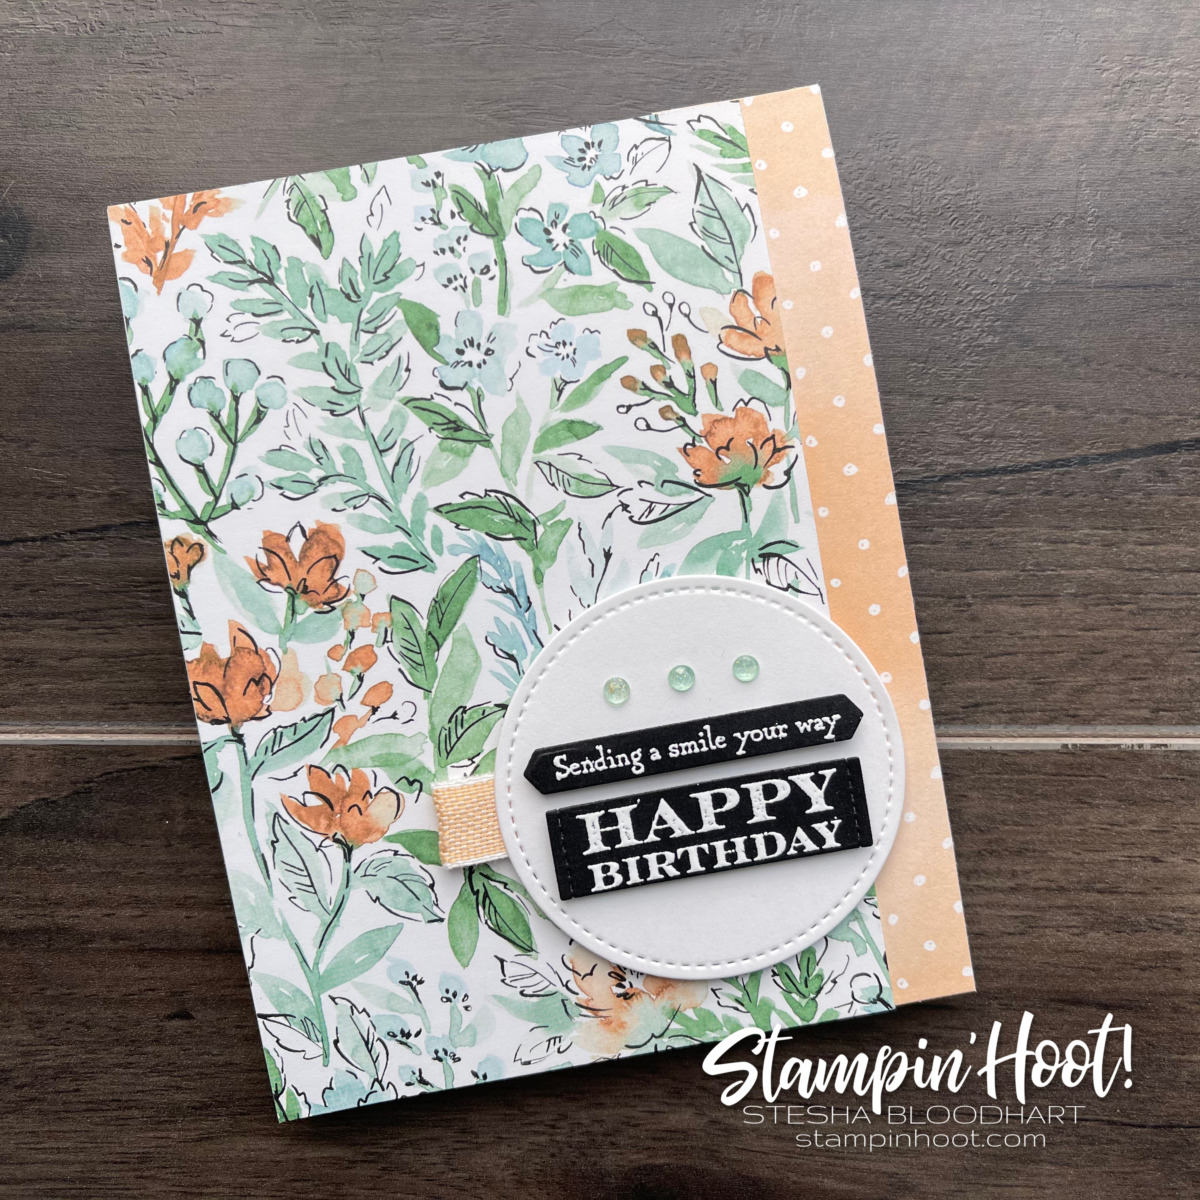 Many Messages Bundle from Stampin' Up! SNEAK PEEK! Hand-Penned Suite Available May 4 Birthday Card By Stesha Bloodhart, Stampin' Hoot!